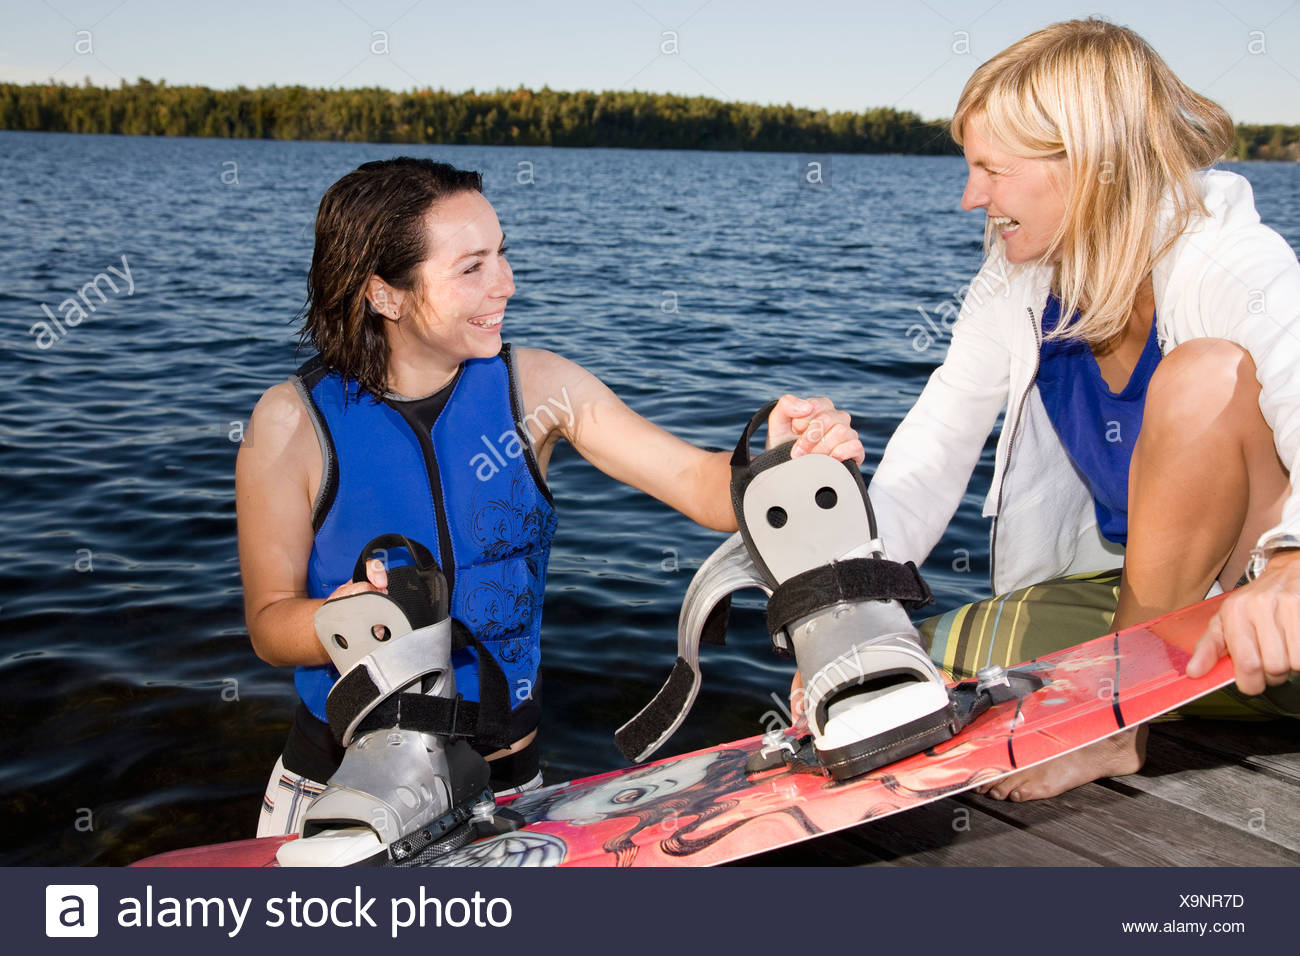 Woman helping friend with wakeboard - Stock Image